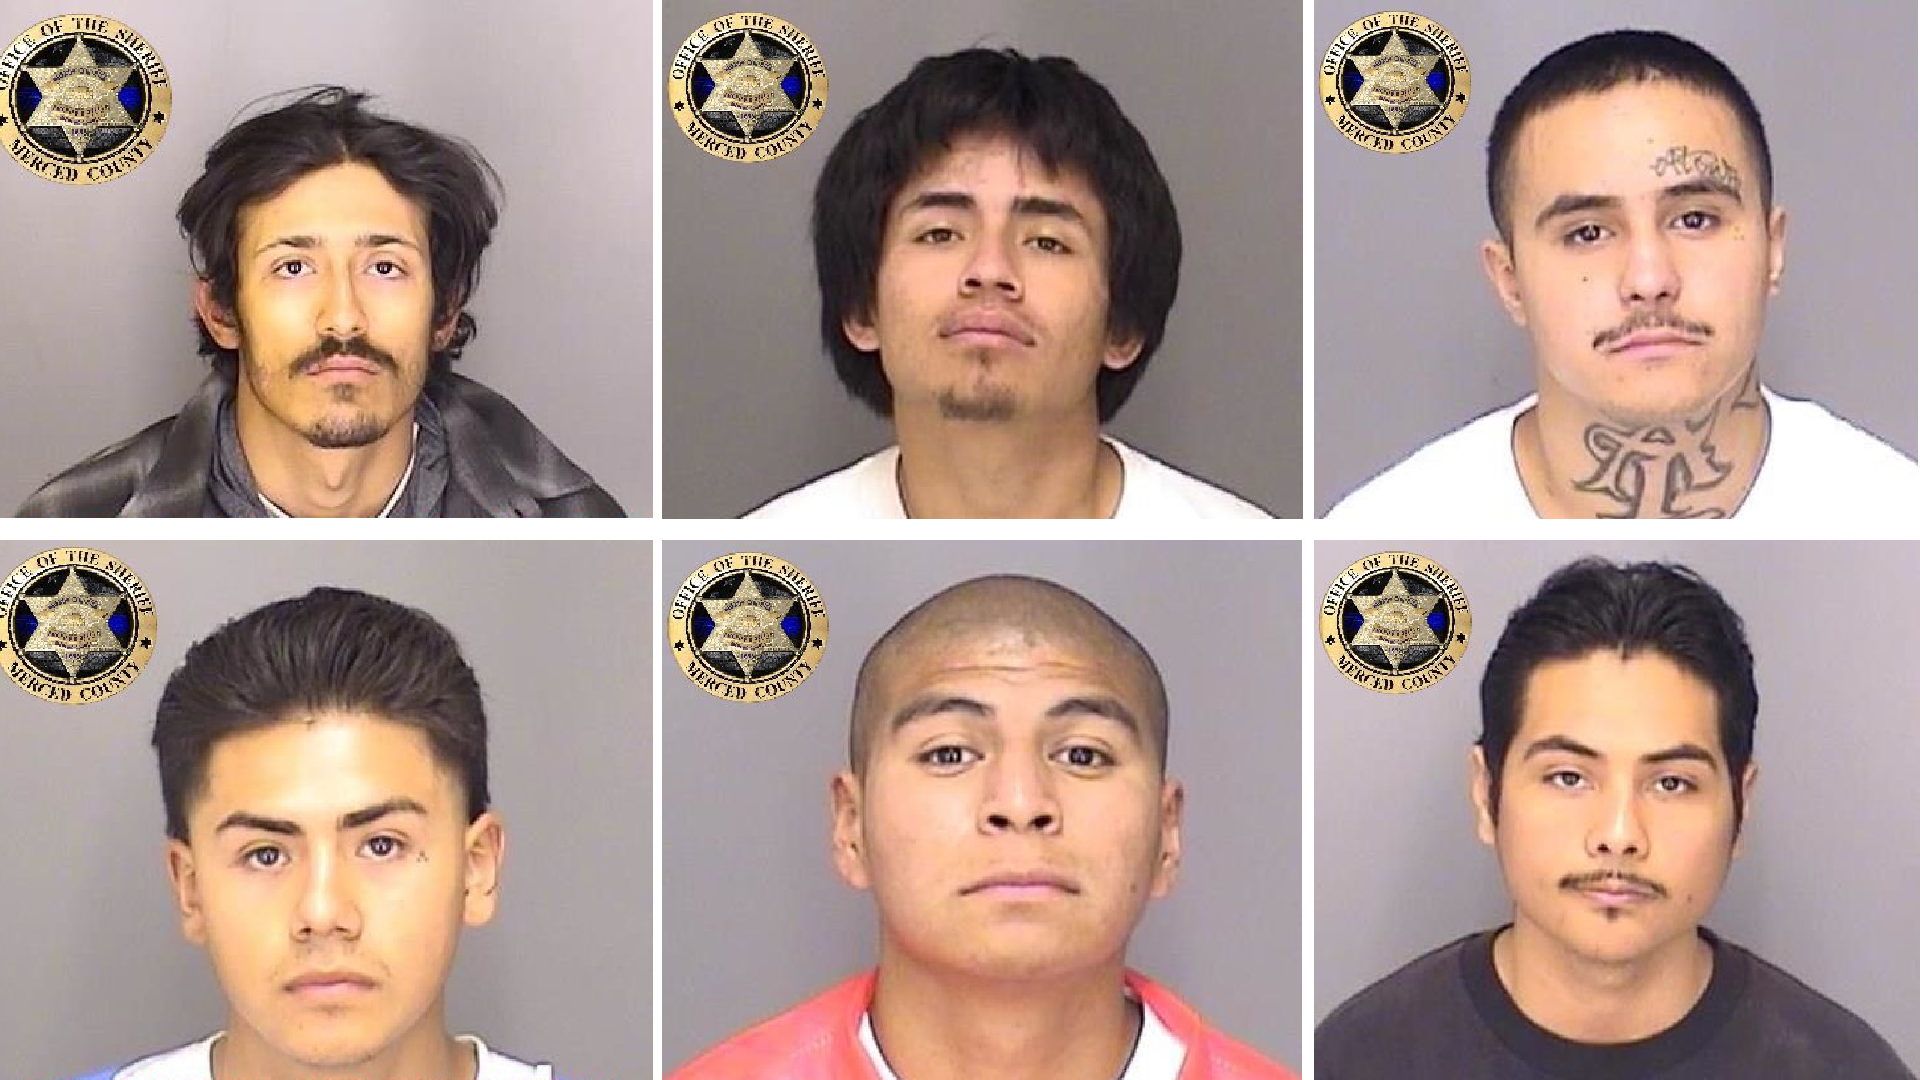 The Merced County Sheriff's Office shared these photos of six inmates they say escaped from the county jail using a homemade rope on Jan. 10, 2021.